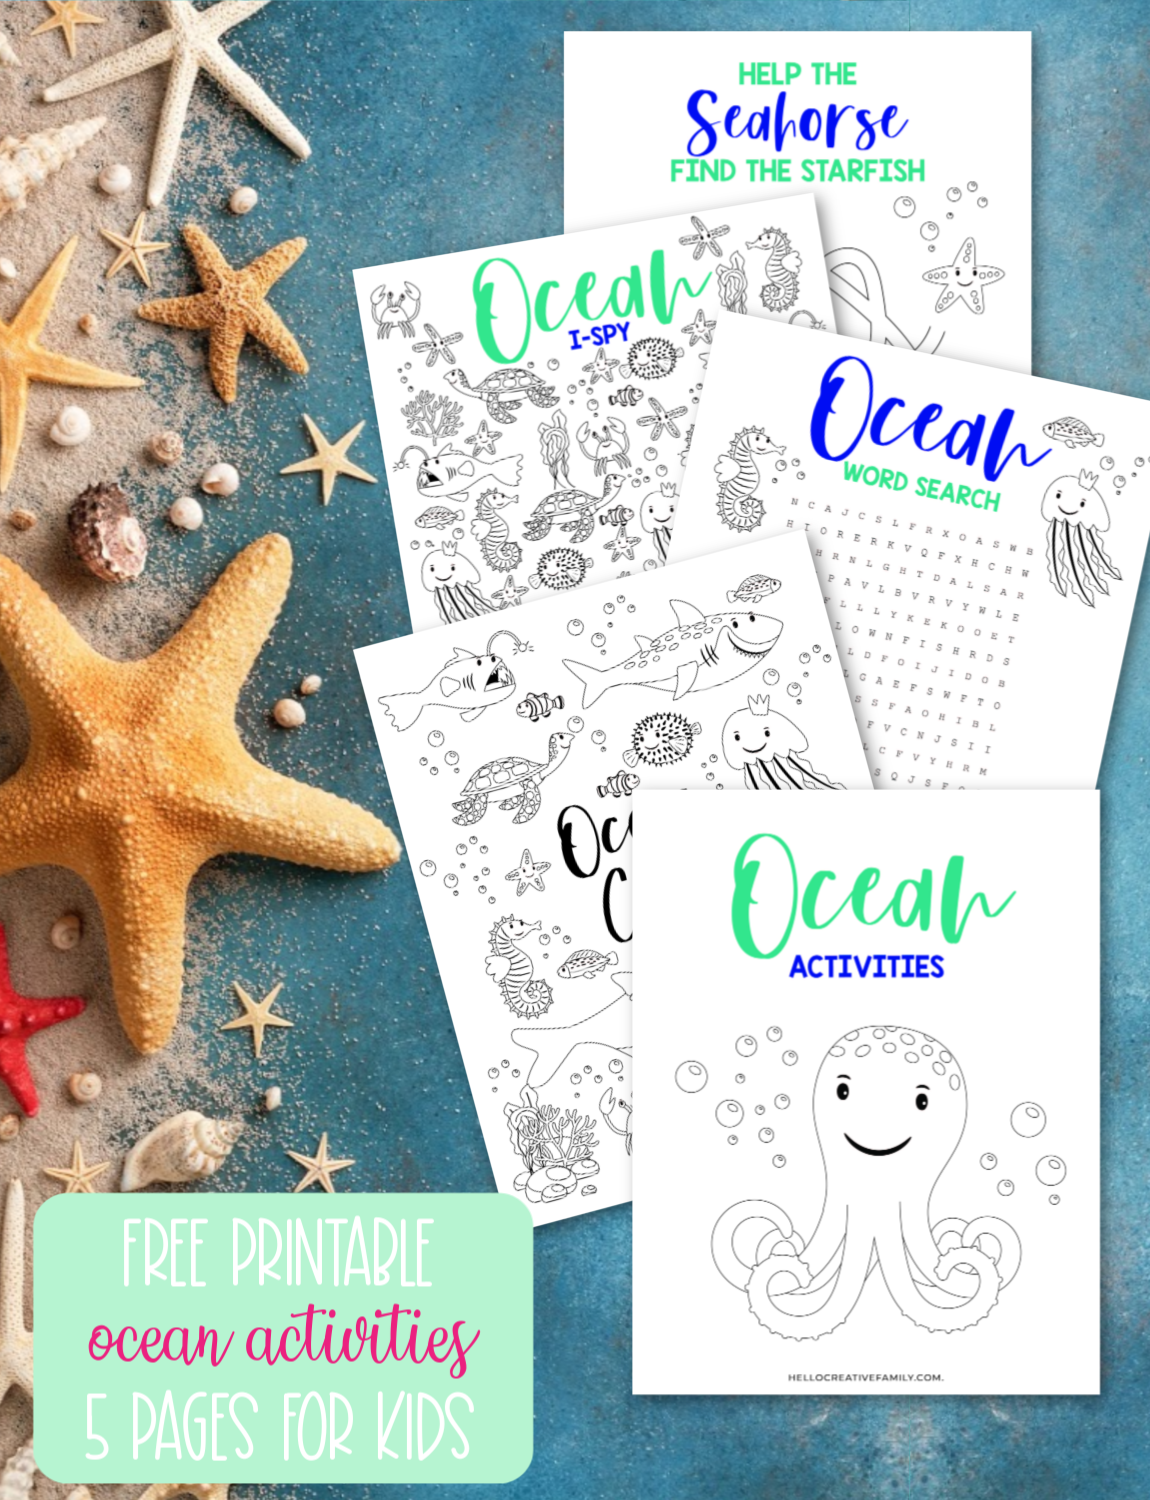 Free Ocean Printable 5 Activity Pages For Kids In